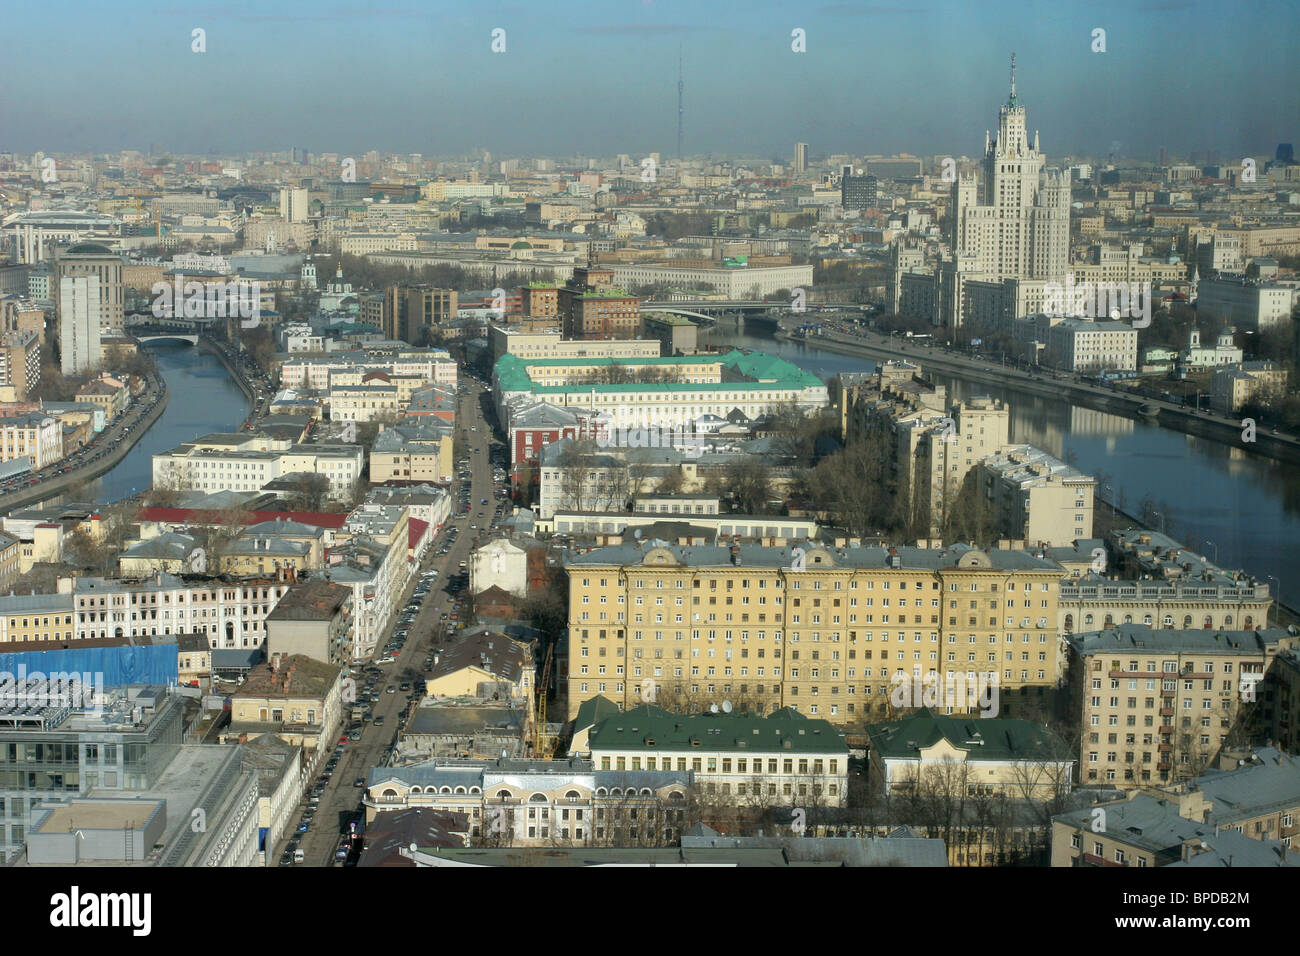 Moscow in pictures - Stock Image